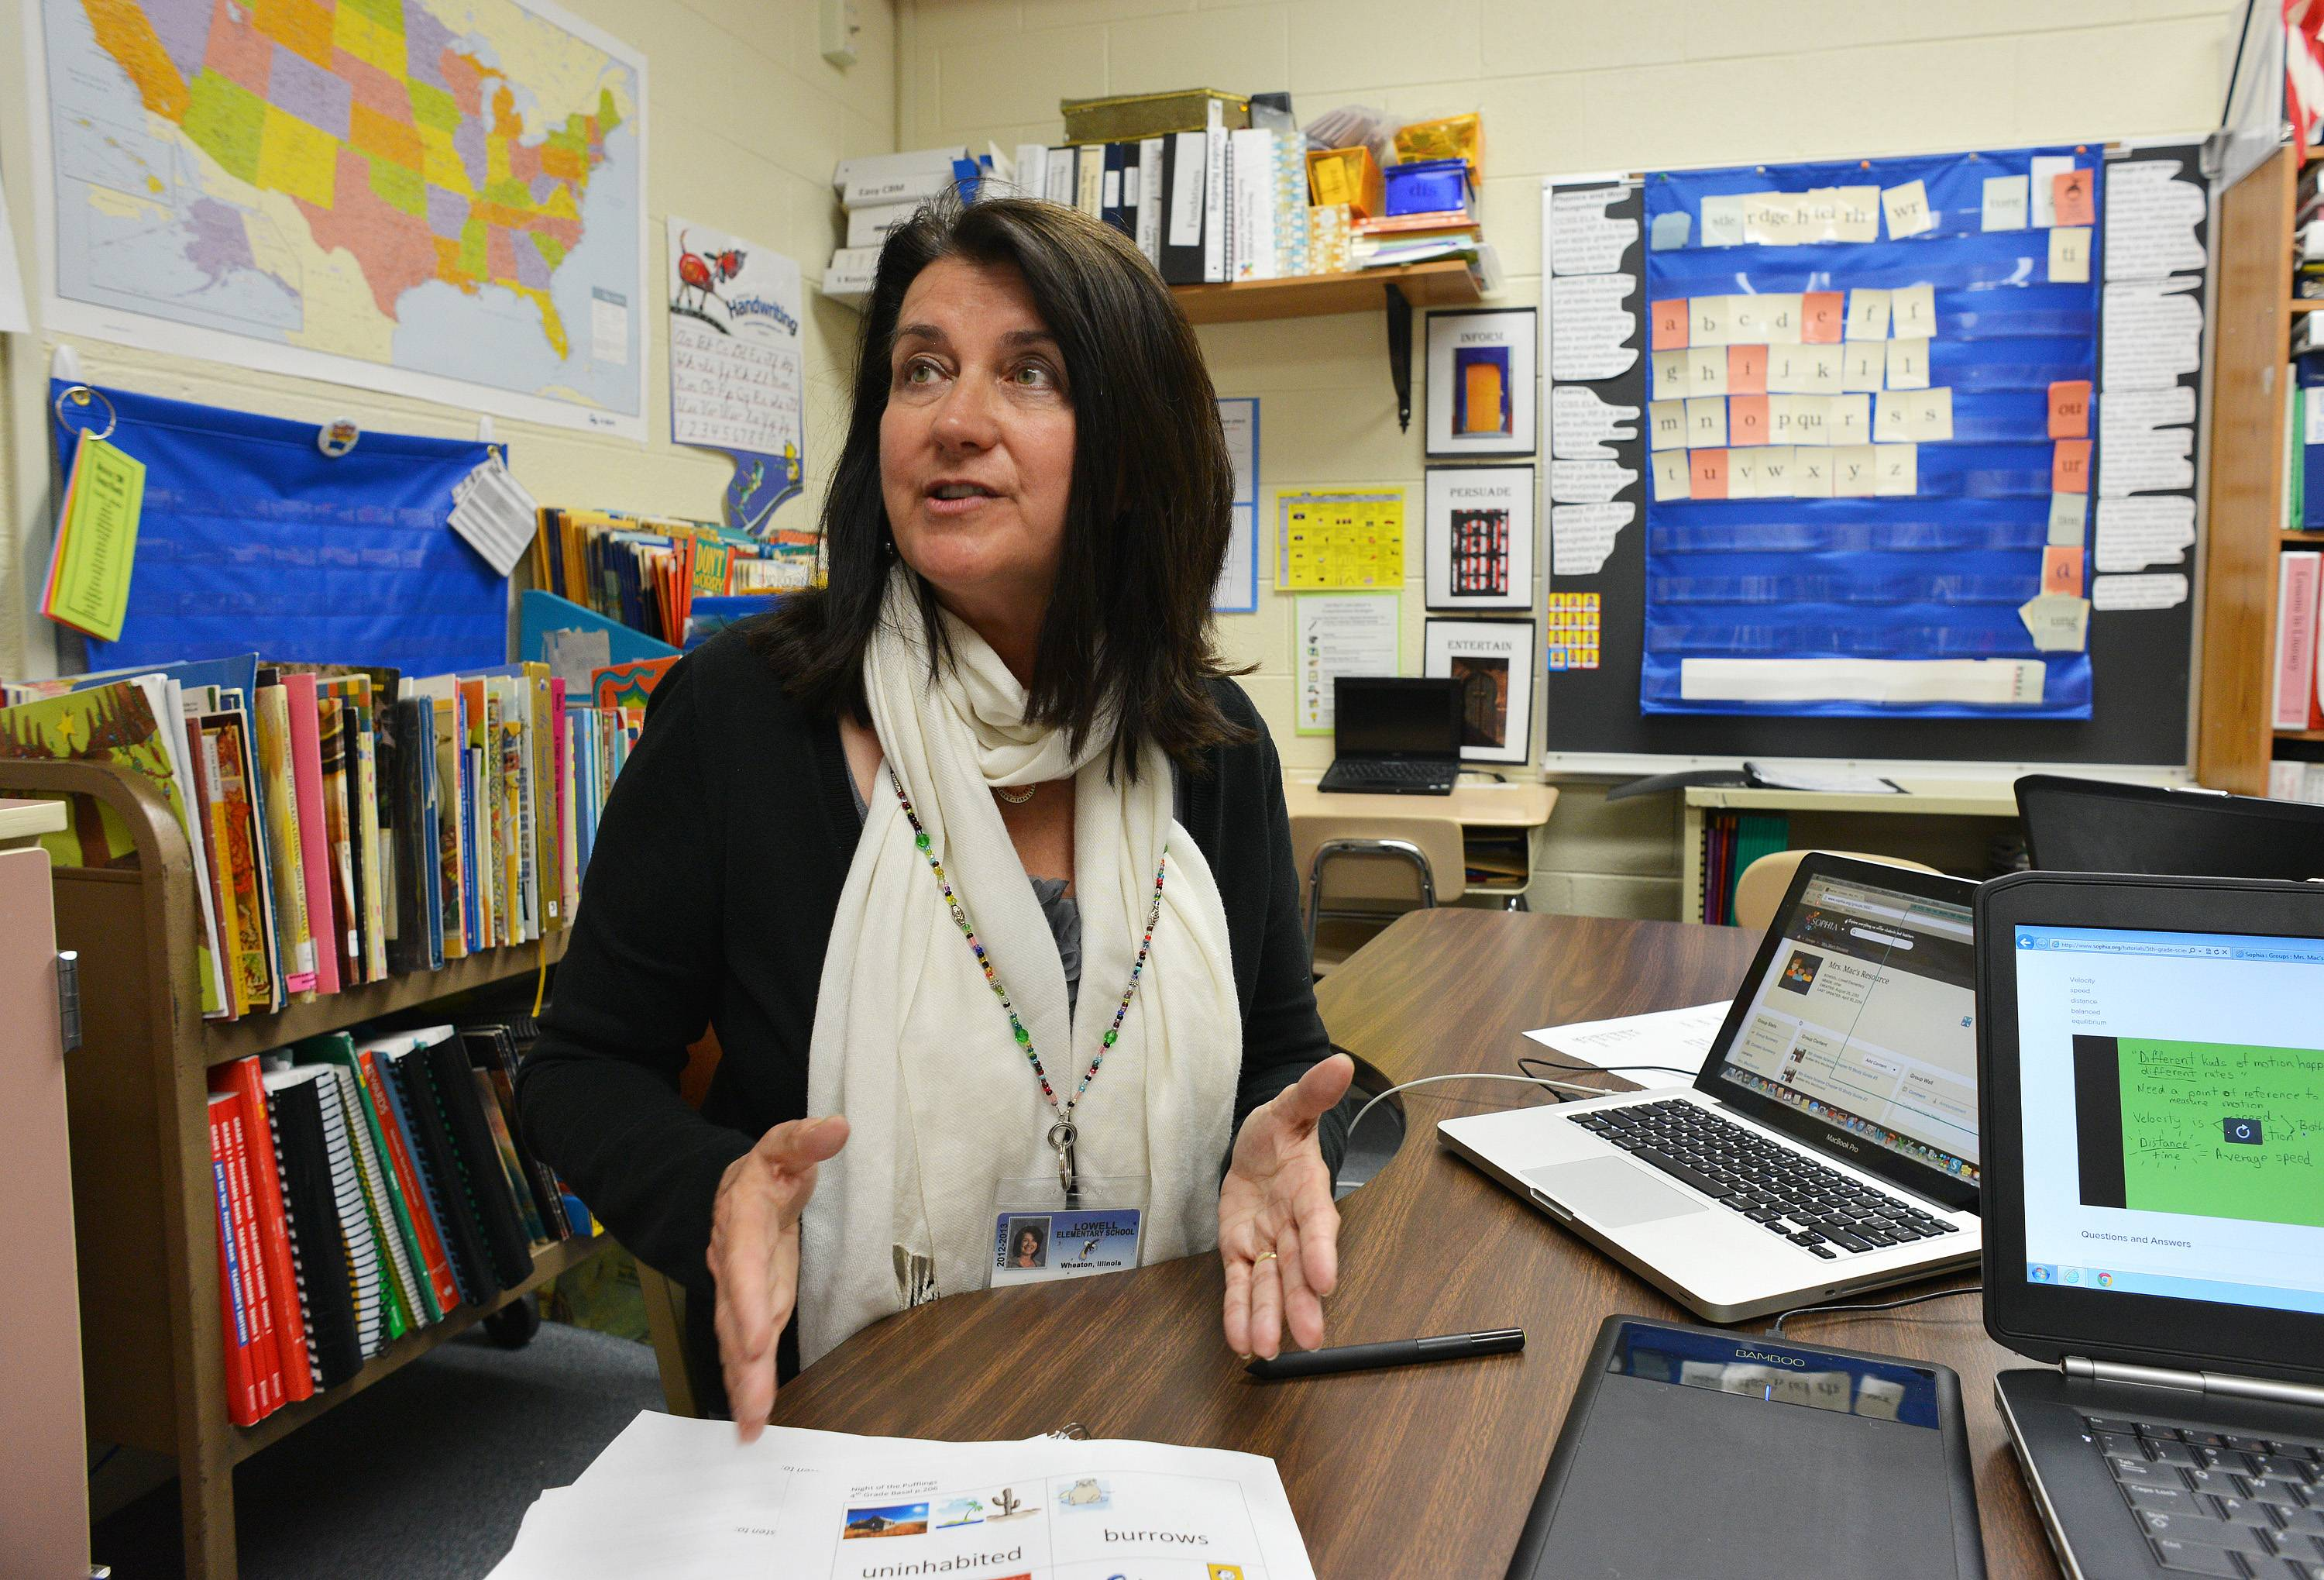 Lowell Elementary School teacher Carmen MacDonald describes how she makes videos of her lessons that students can review from home.